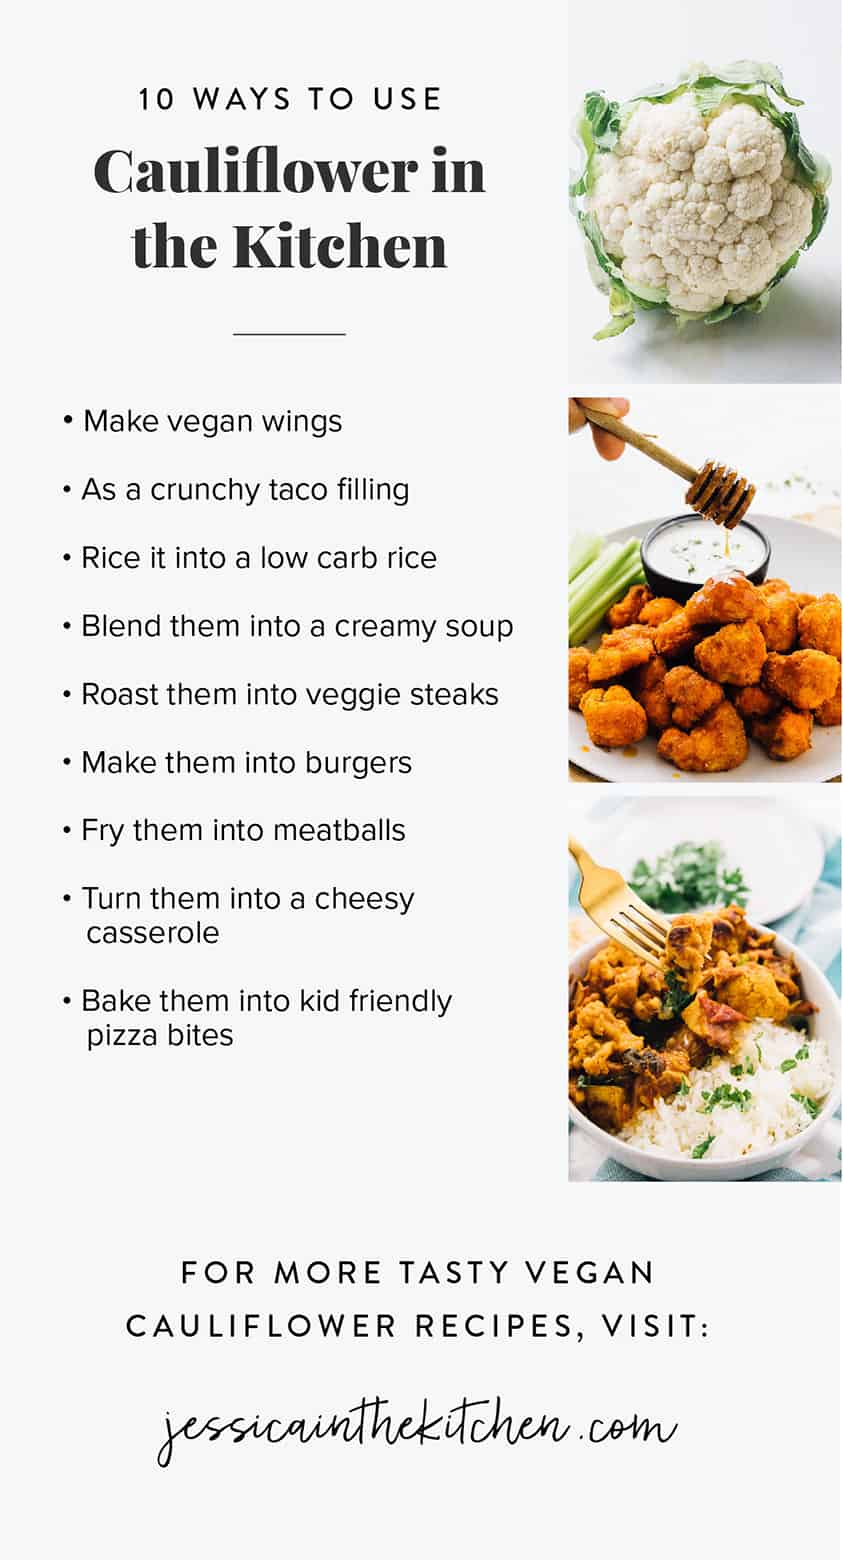 A list outlining the ways to use cauliflower in recipes.